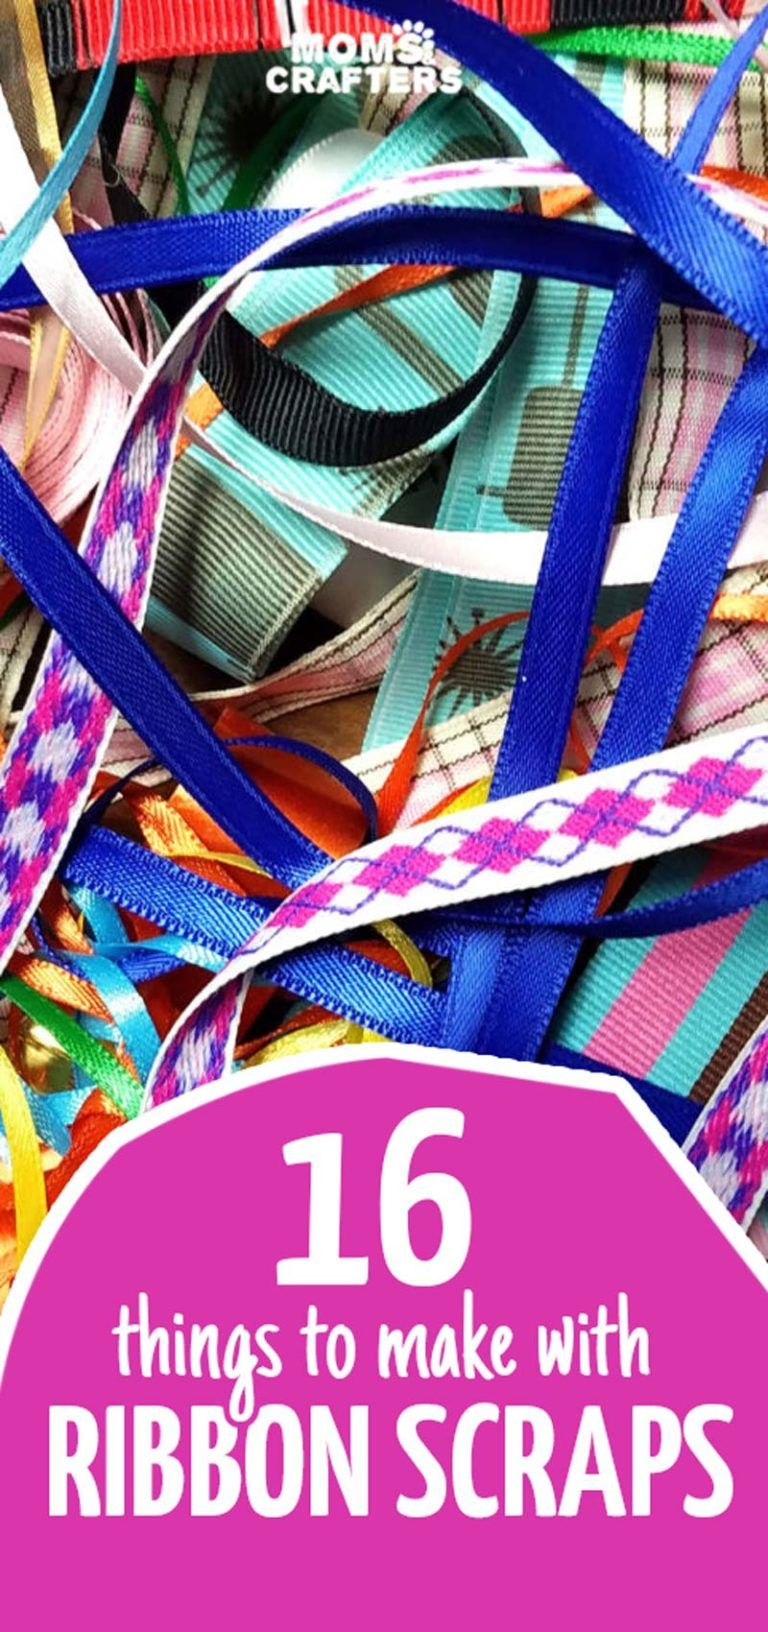 16 Things to Make with Ribbon Scraps